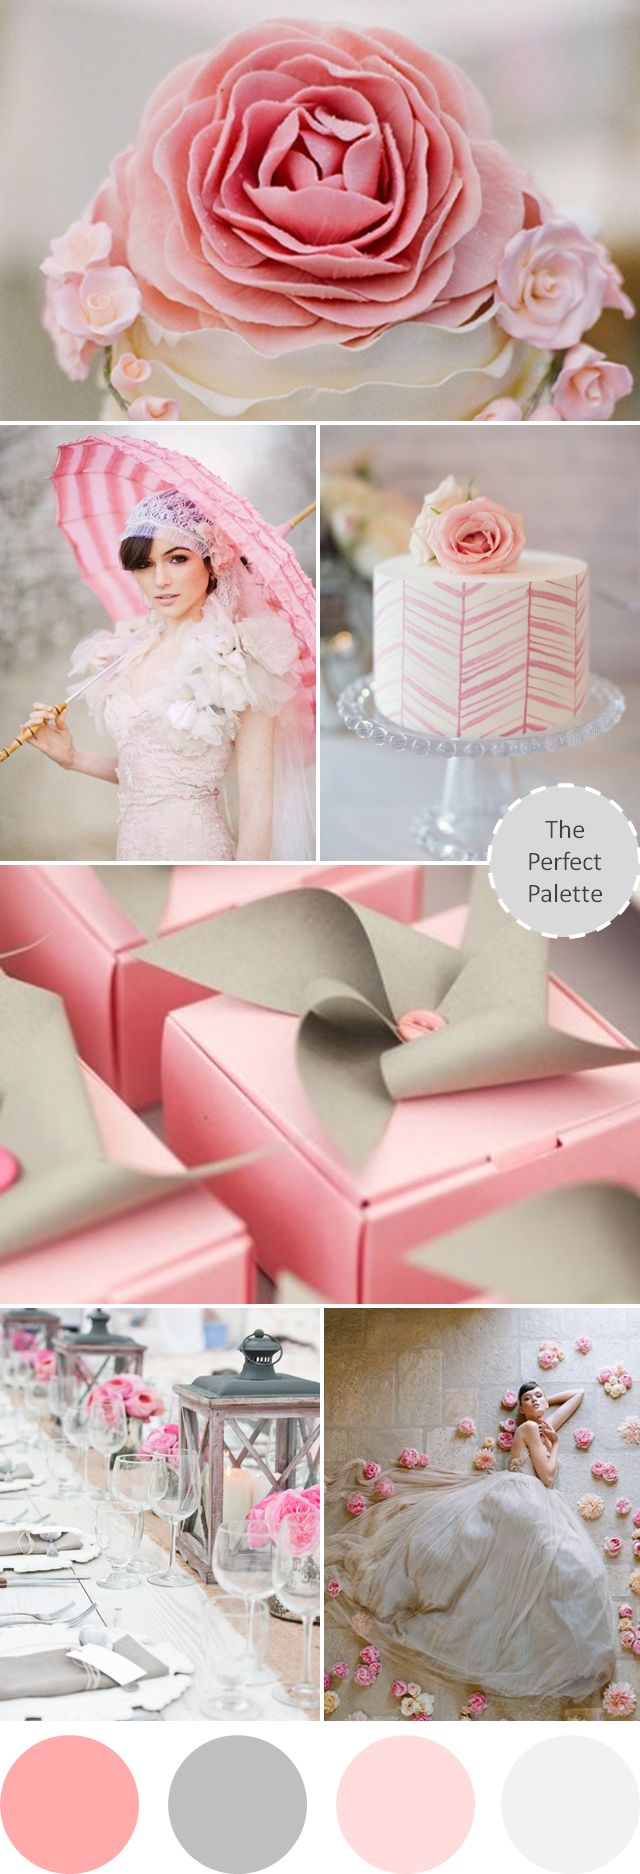 #themes Shades of Pink + Gray http://www.theperfectpalette.com/2013/07/dreamy-i-dos-shades-of-pink-gray.html